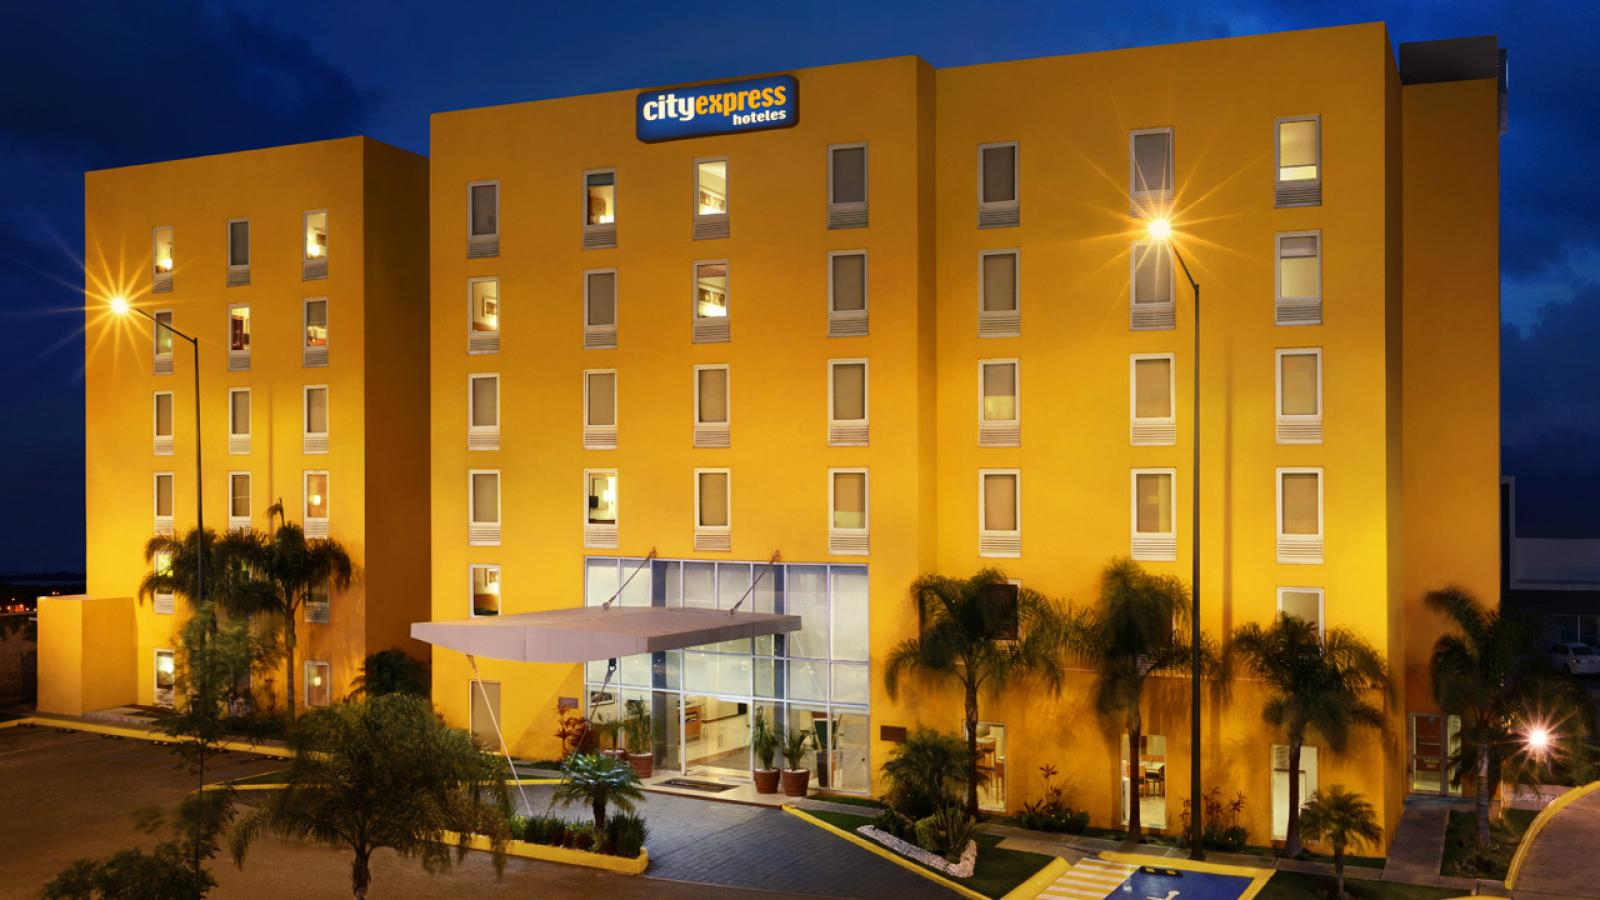 City express irapuato hoteles city express for Sites hotel